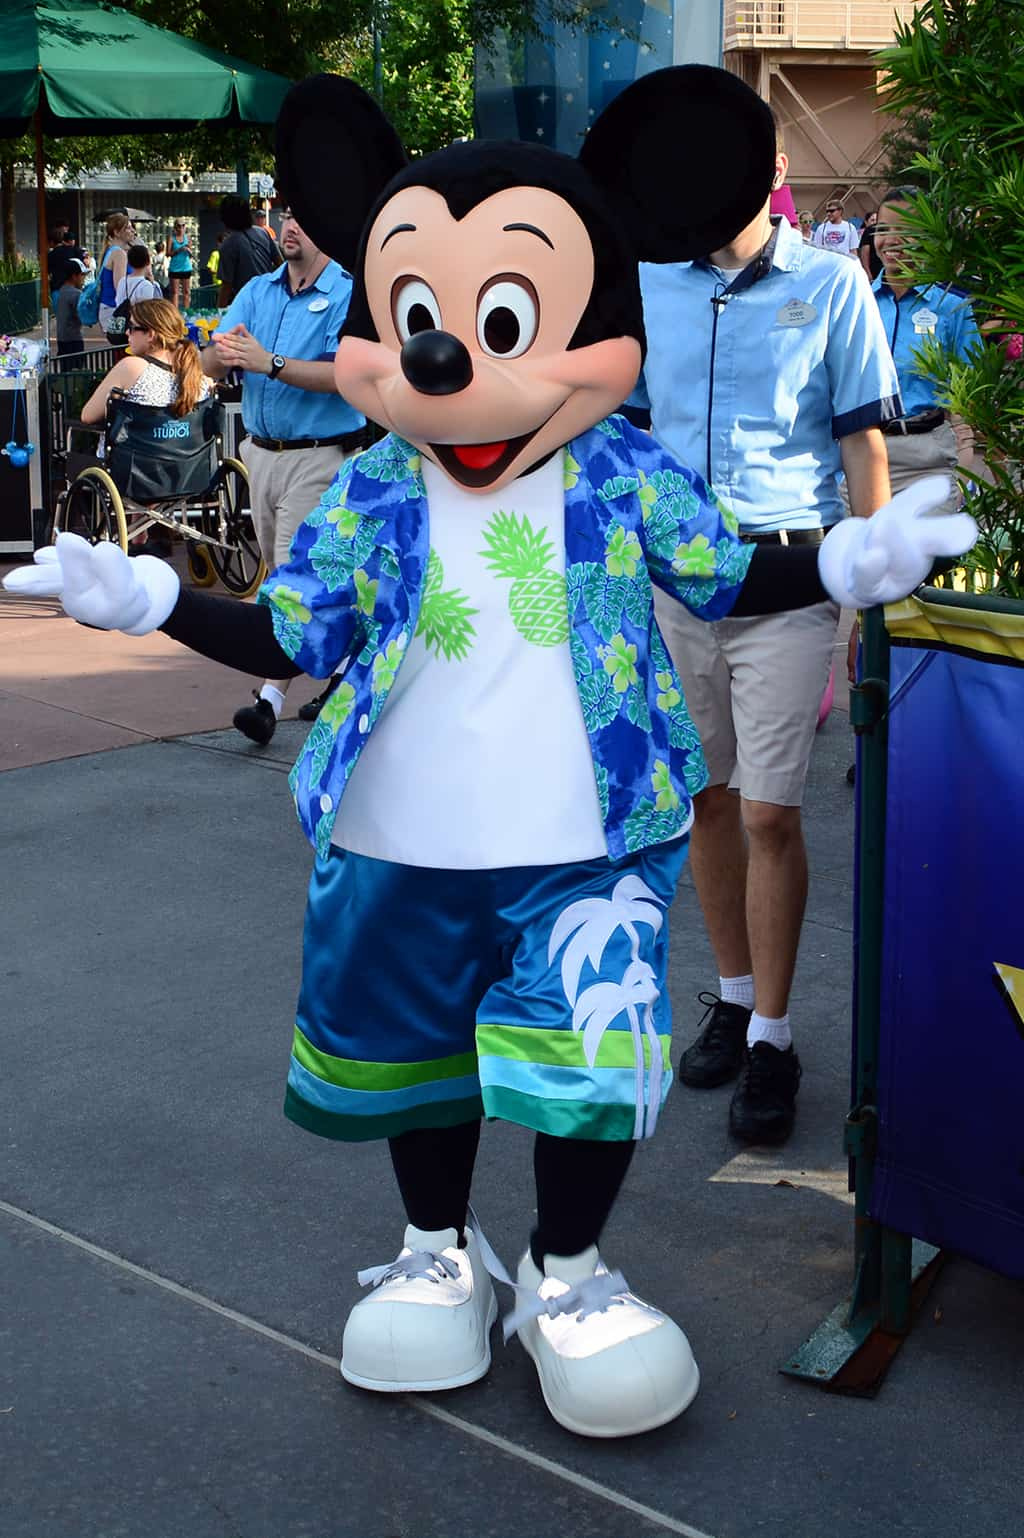 Mickey Mouse at Rock your summer side dance party at Hollywood Studios June 2014